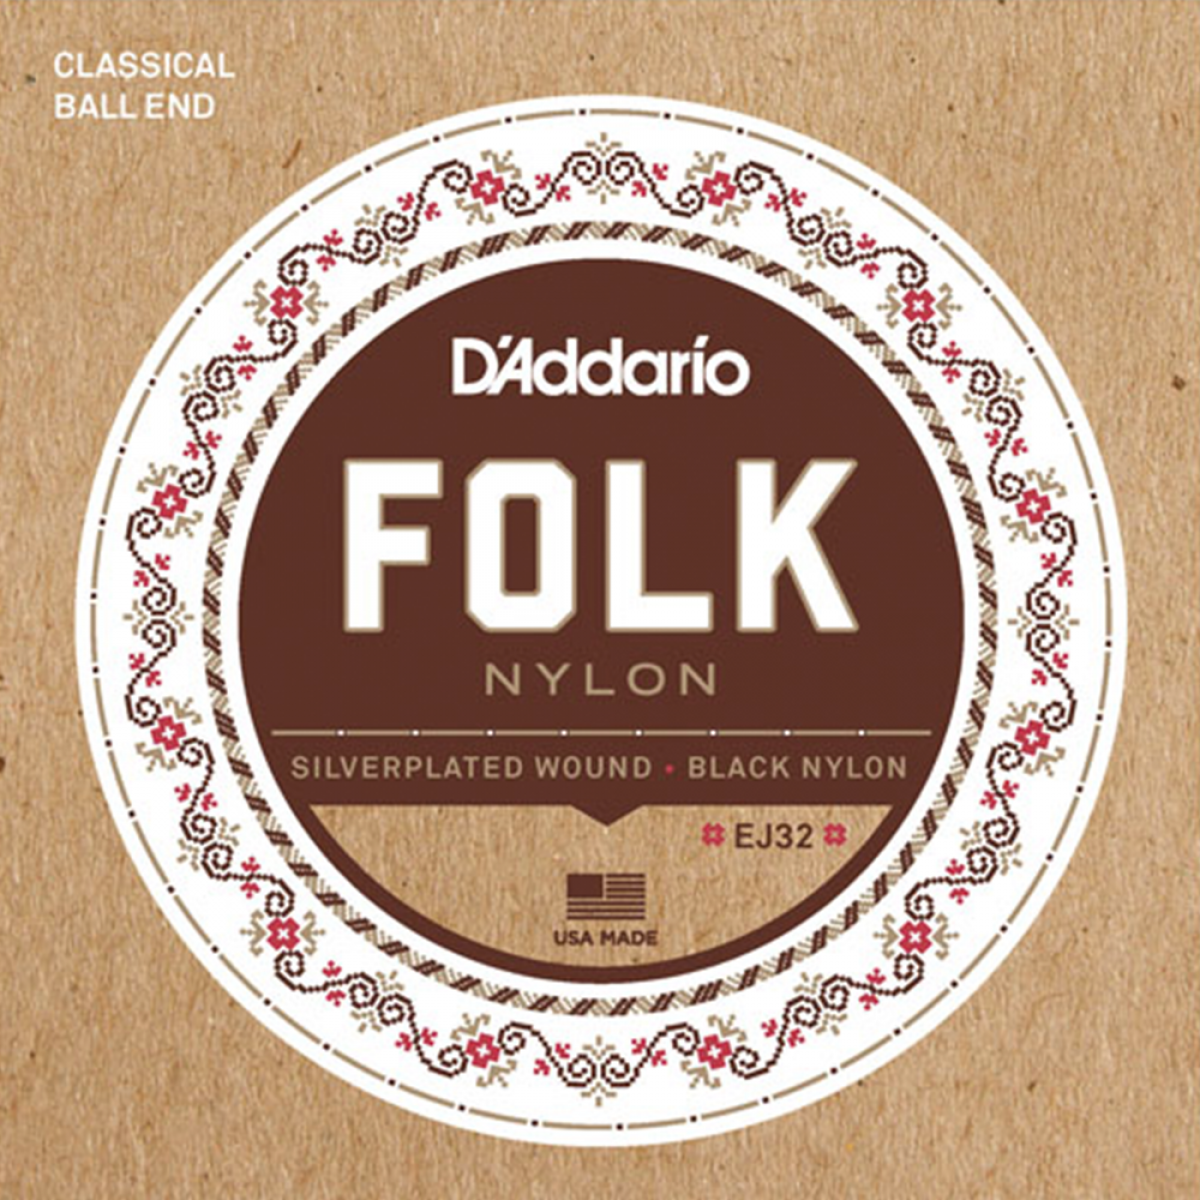 D'Addario D'addario EJ32 Folk Silverplated Wound Black Nylon Ball End